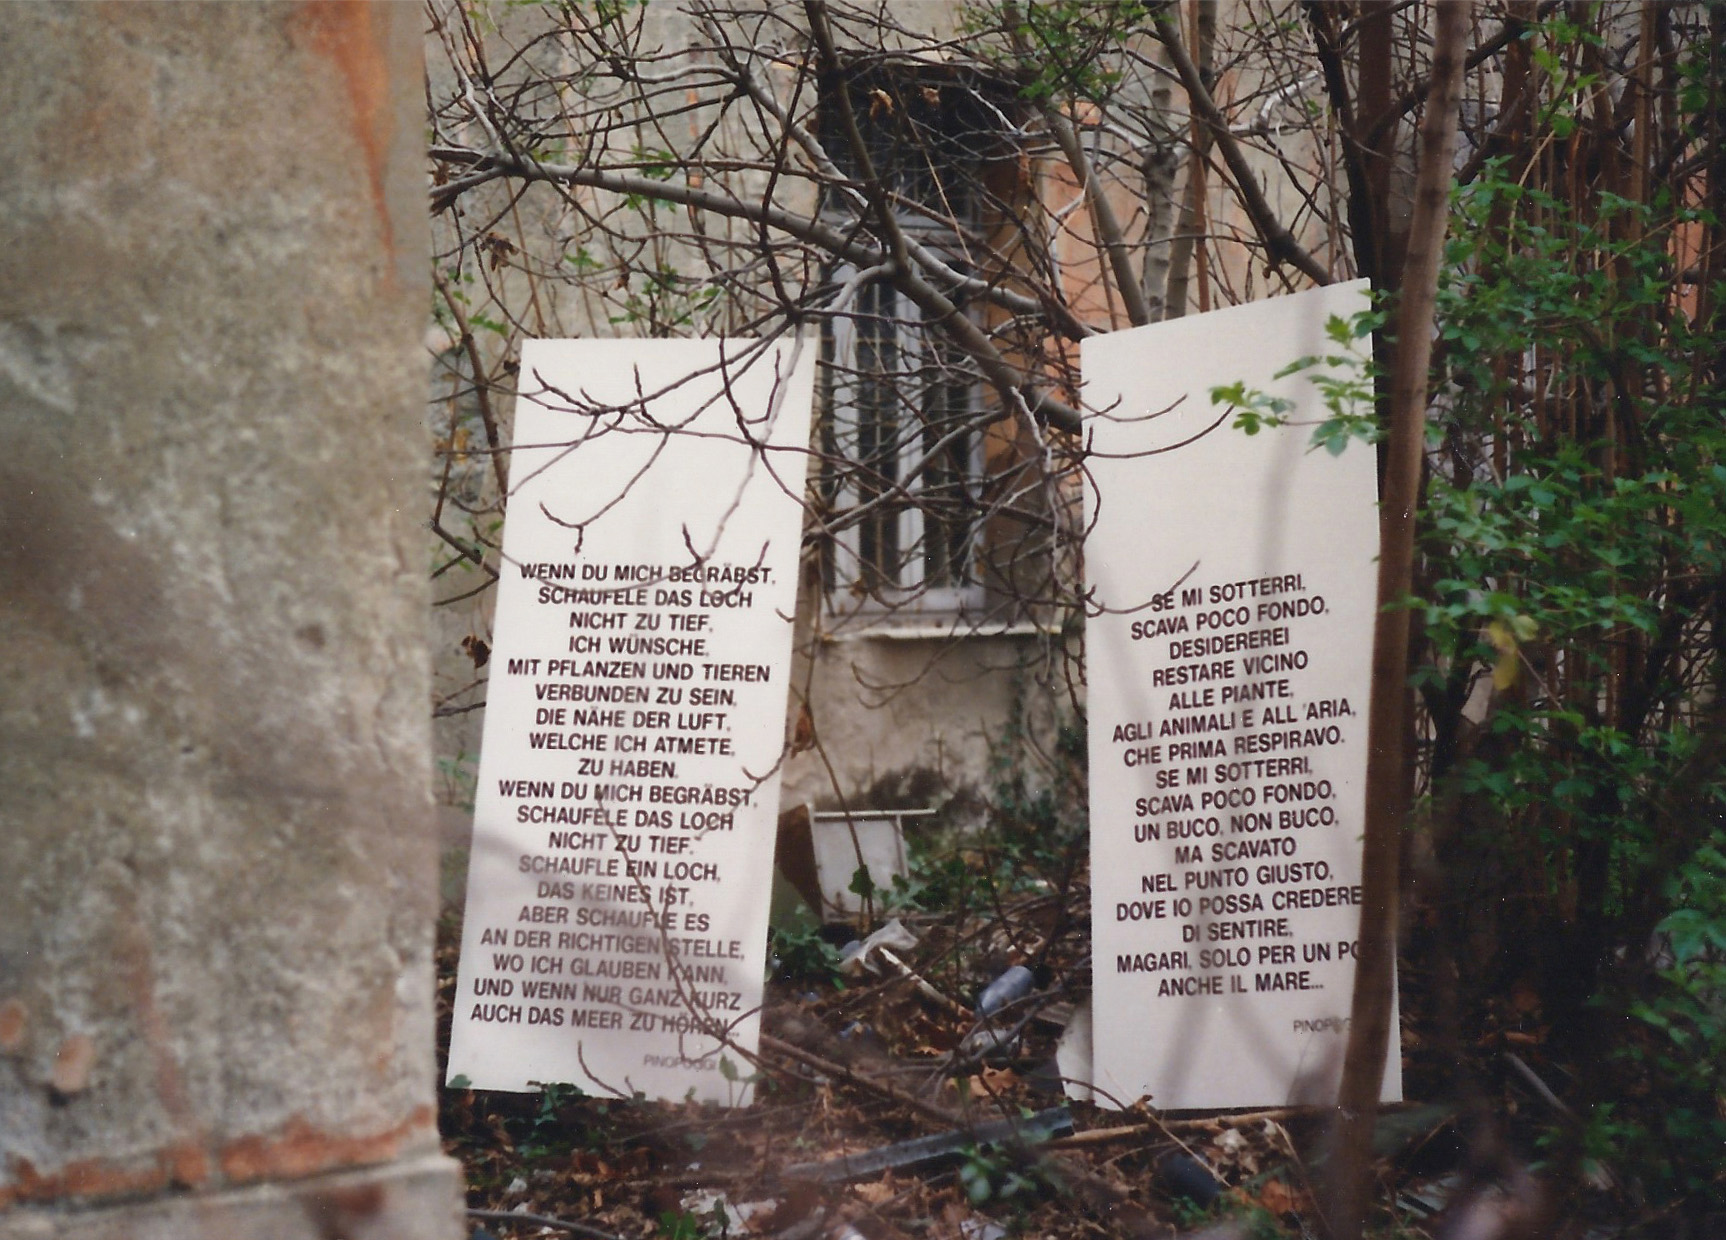 2 white boards with black text in german and italian standing in a shabby backyard.